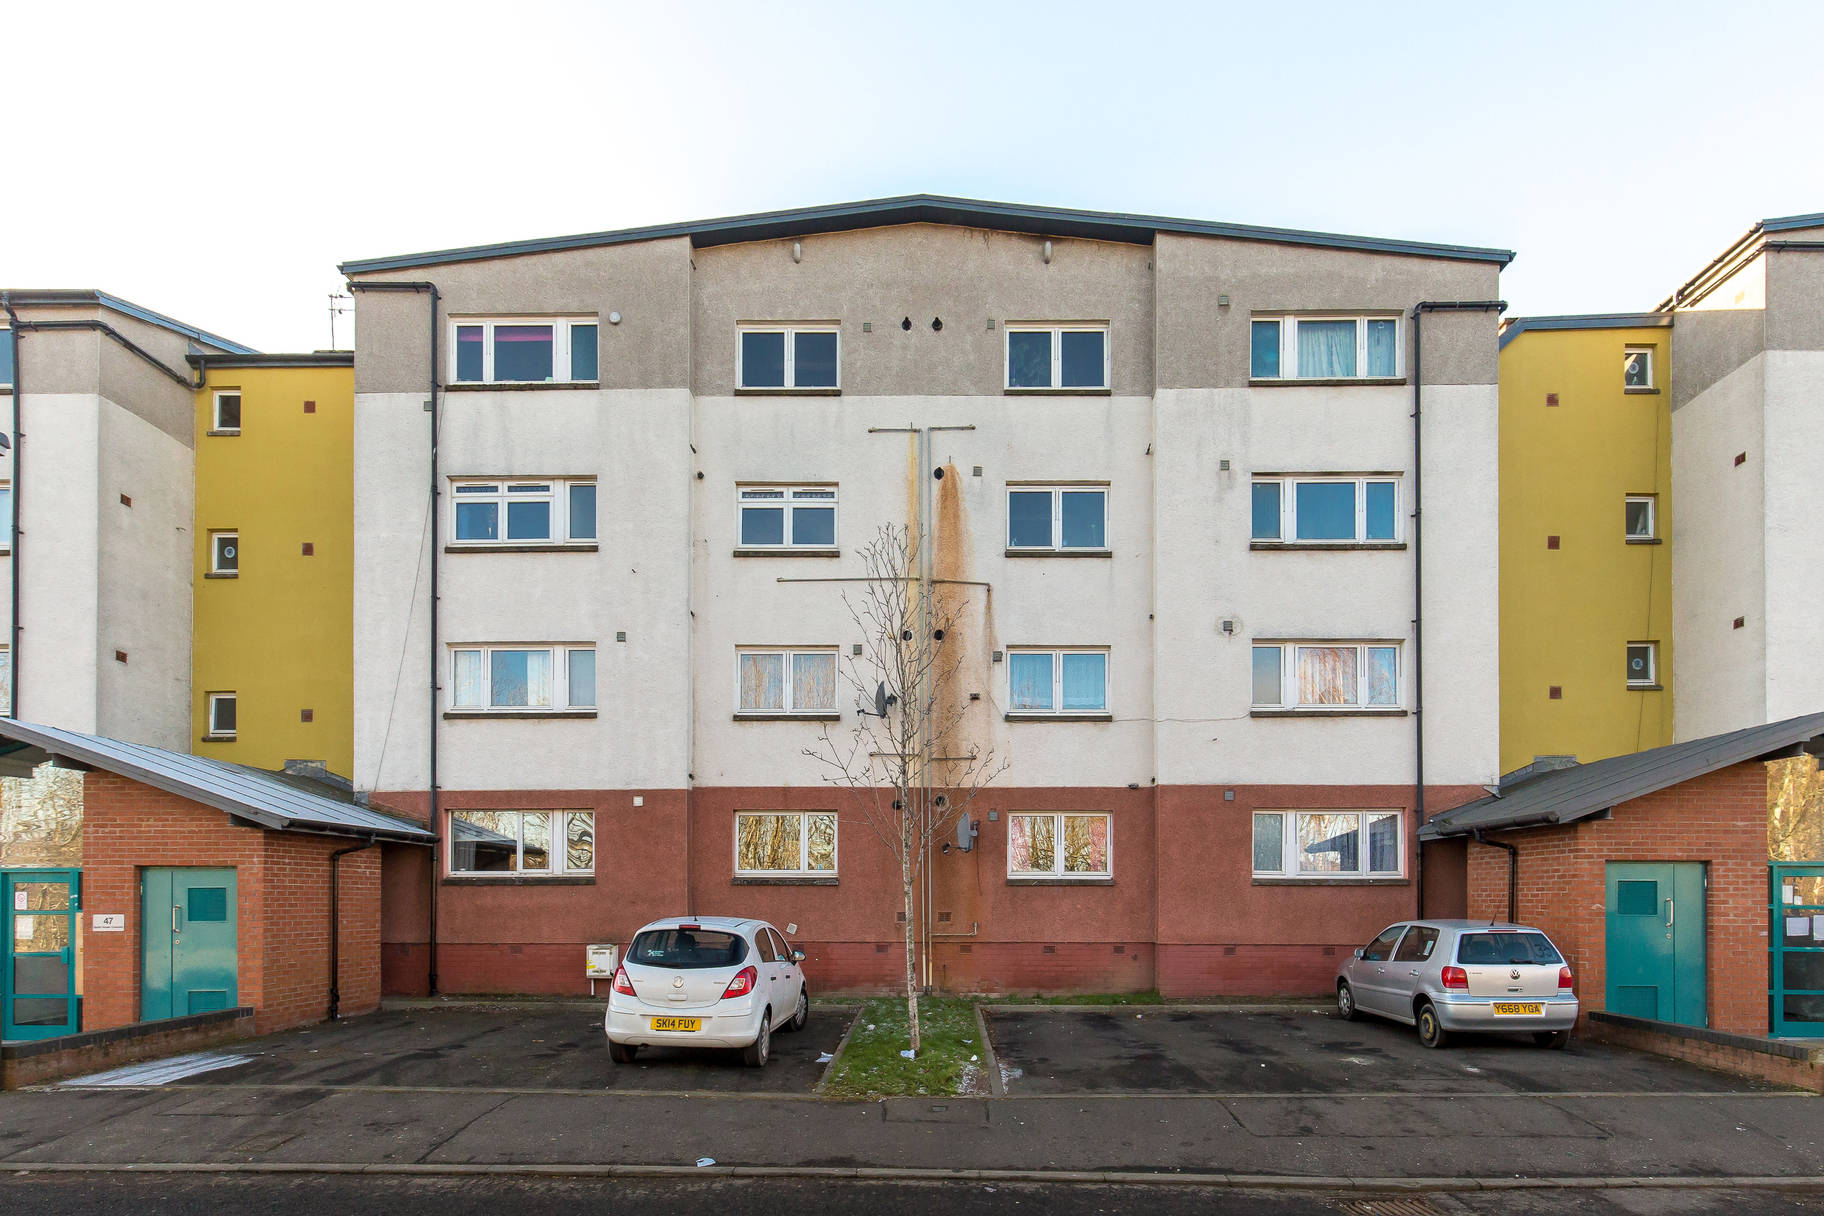 47/5 Southhouse Crescent, Edinburgh, EH17 8BT